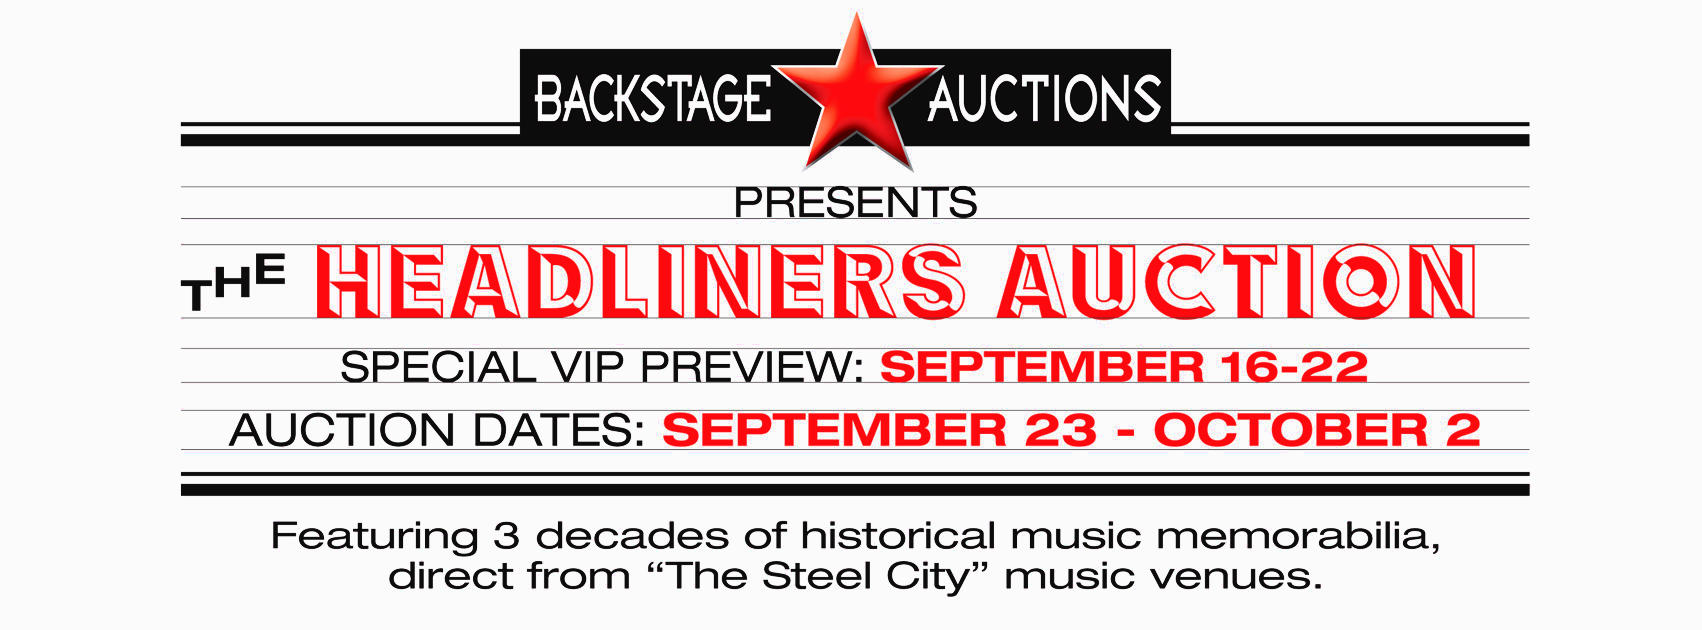 The Headliners Auction